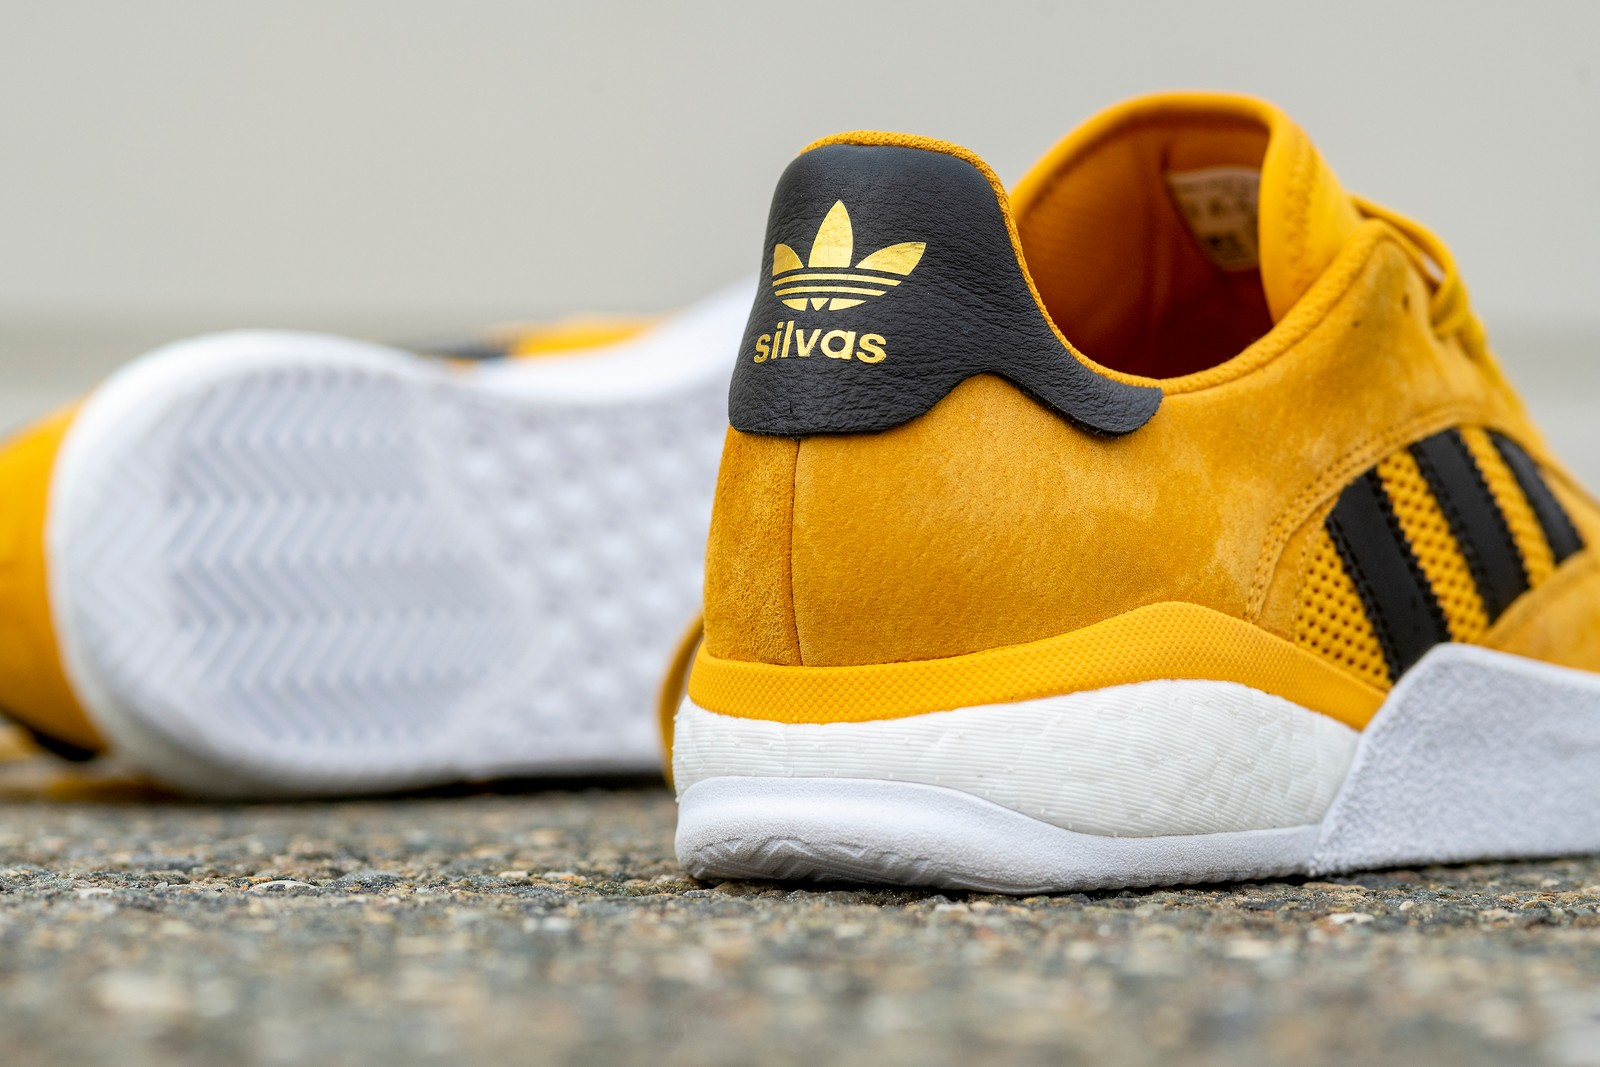 ADIDAS KICKS OFF ITS RIDER SERIES WITH MILES SILVAS'S TAKE ON THE 3ST.004